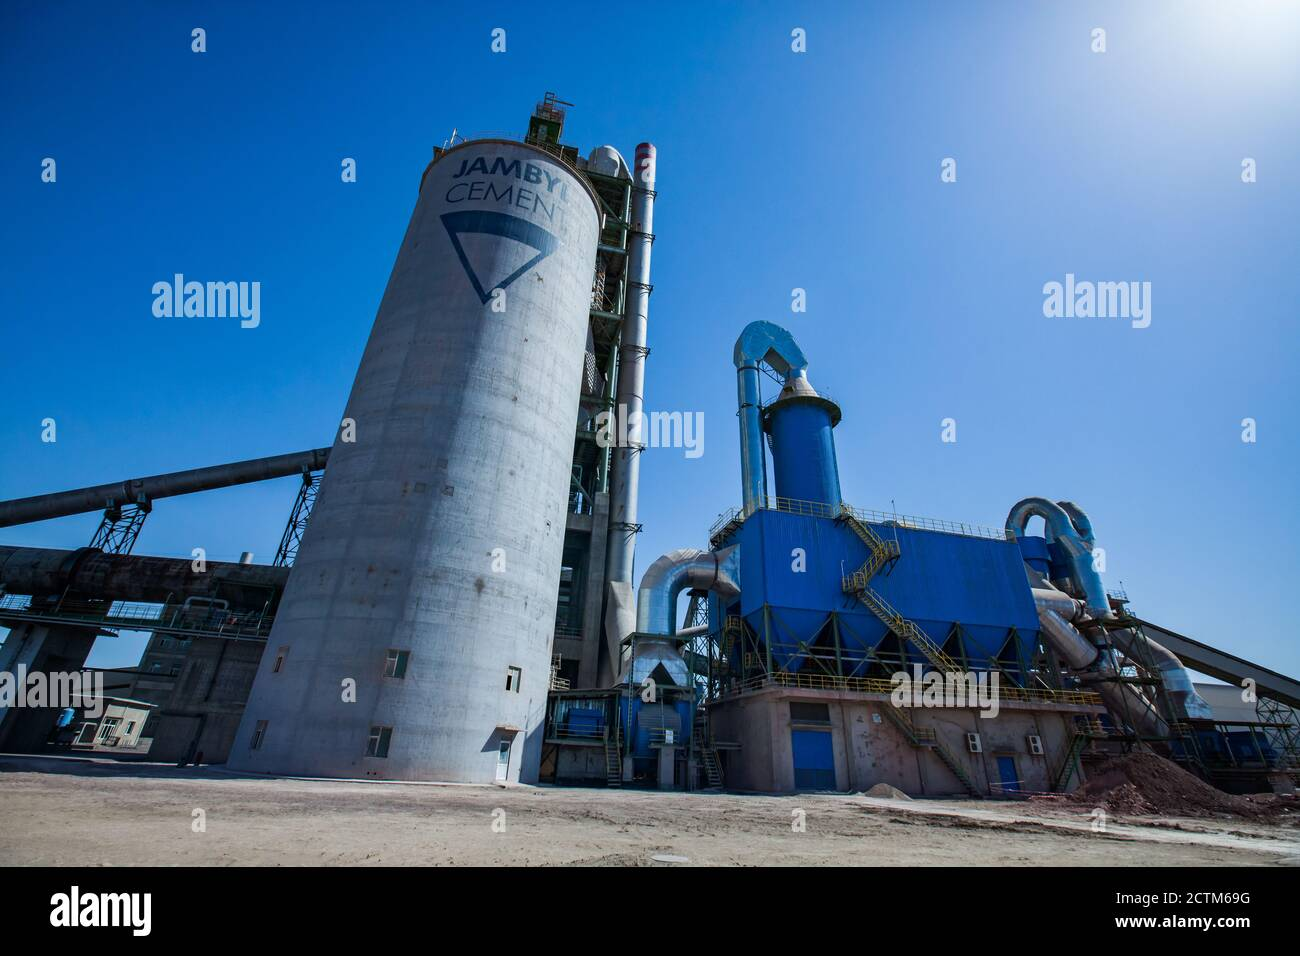 Mynaral/Kazakhstan - April 23 2012: Jambyl Cement plant. Industrial buildings and silos. Panorama view. Clear blue sky with sun. Stock Photo